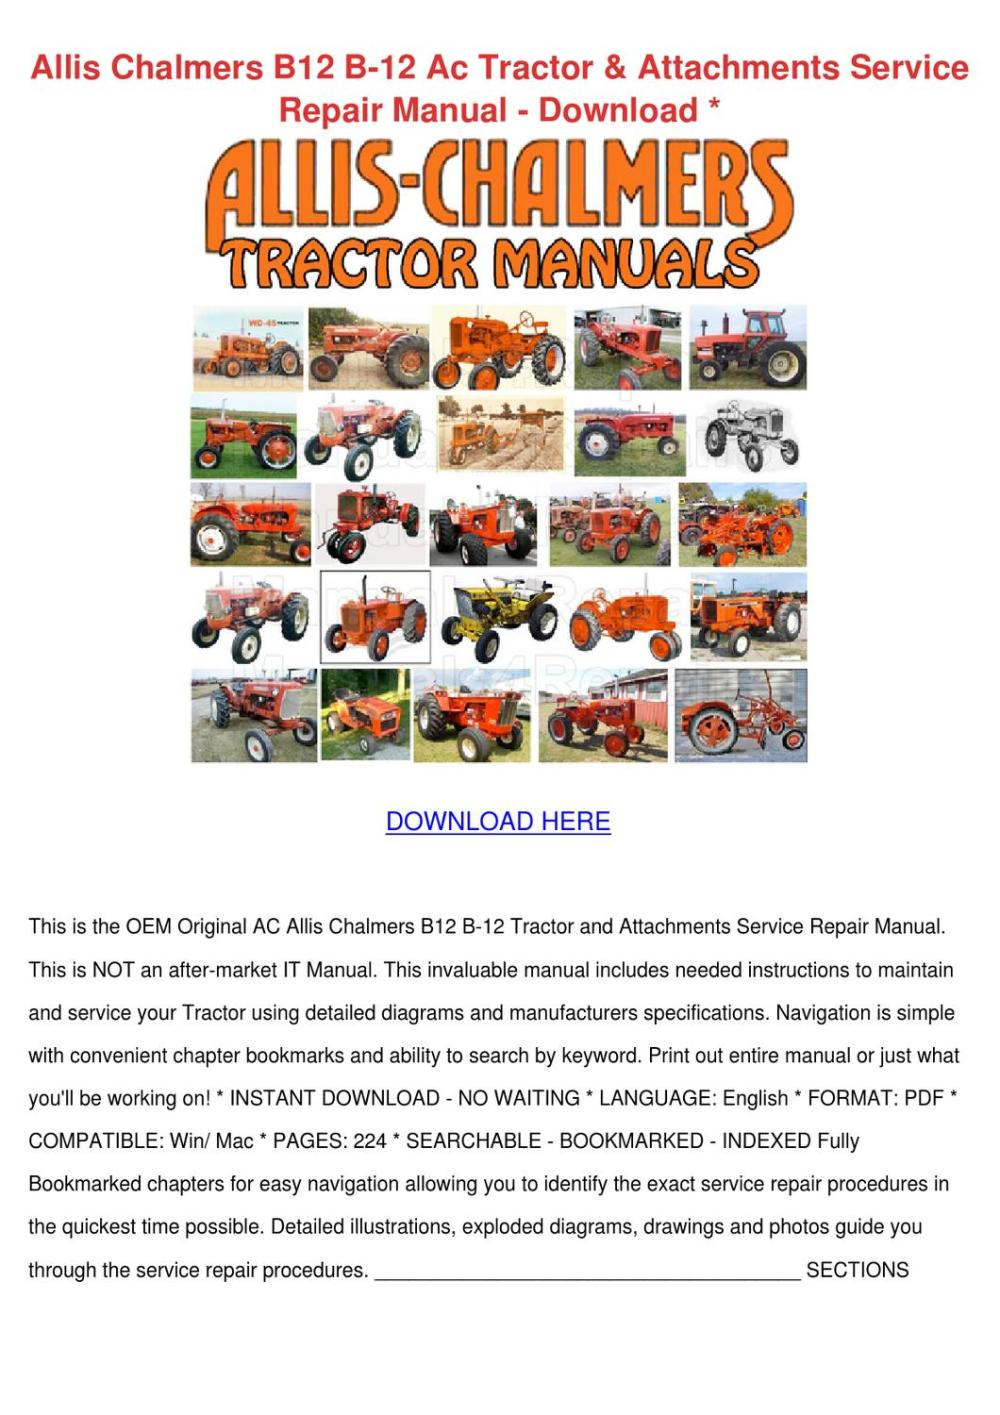 medium resolution of  12v relay wiring diagram allis chalmers b12 b 12 ac tractor attachment by johnette pamphile issuu